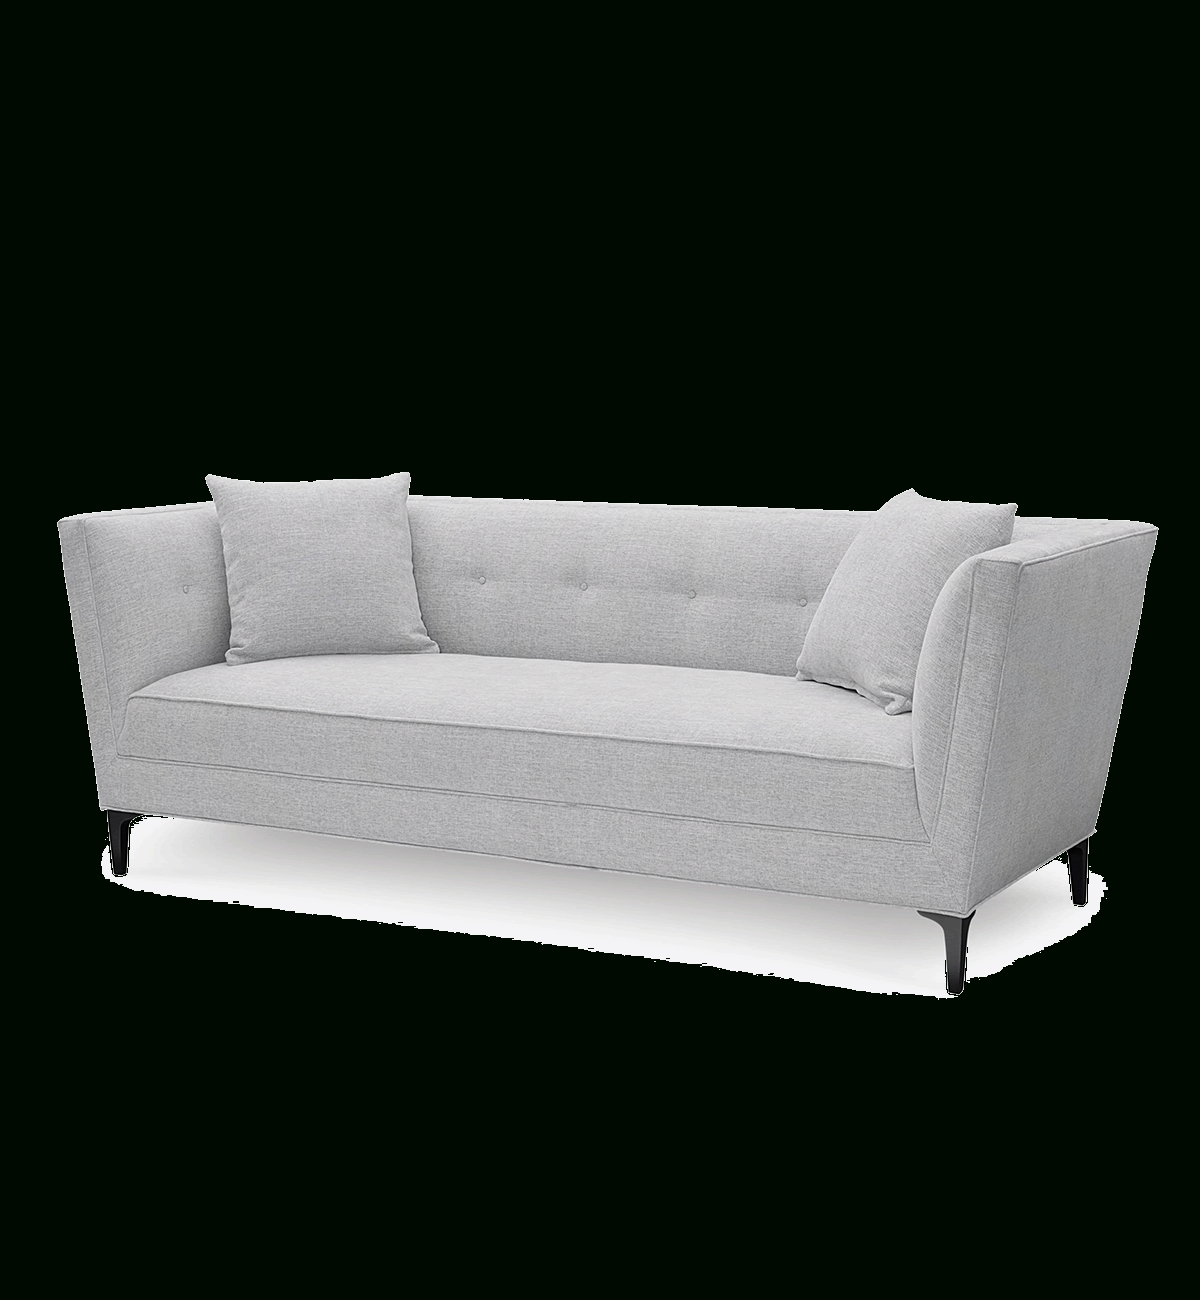 Sectional Sofas Couches And Sofas – Macy's Inside 2018 Macys Sectional Sofas (View 11 of 20)